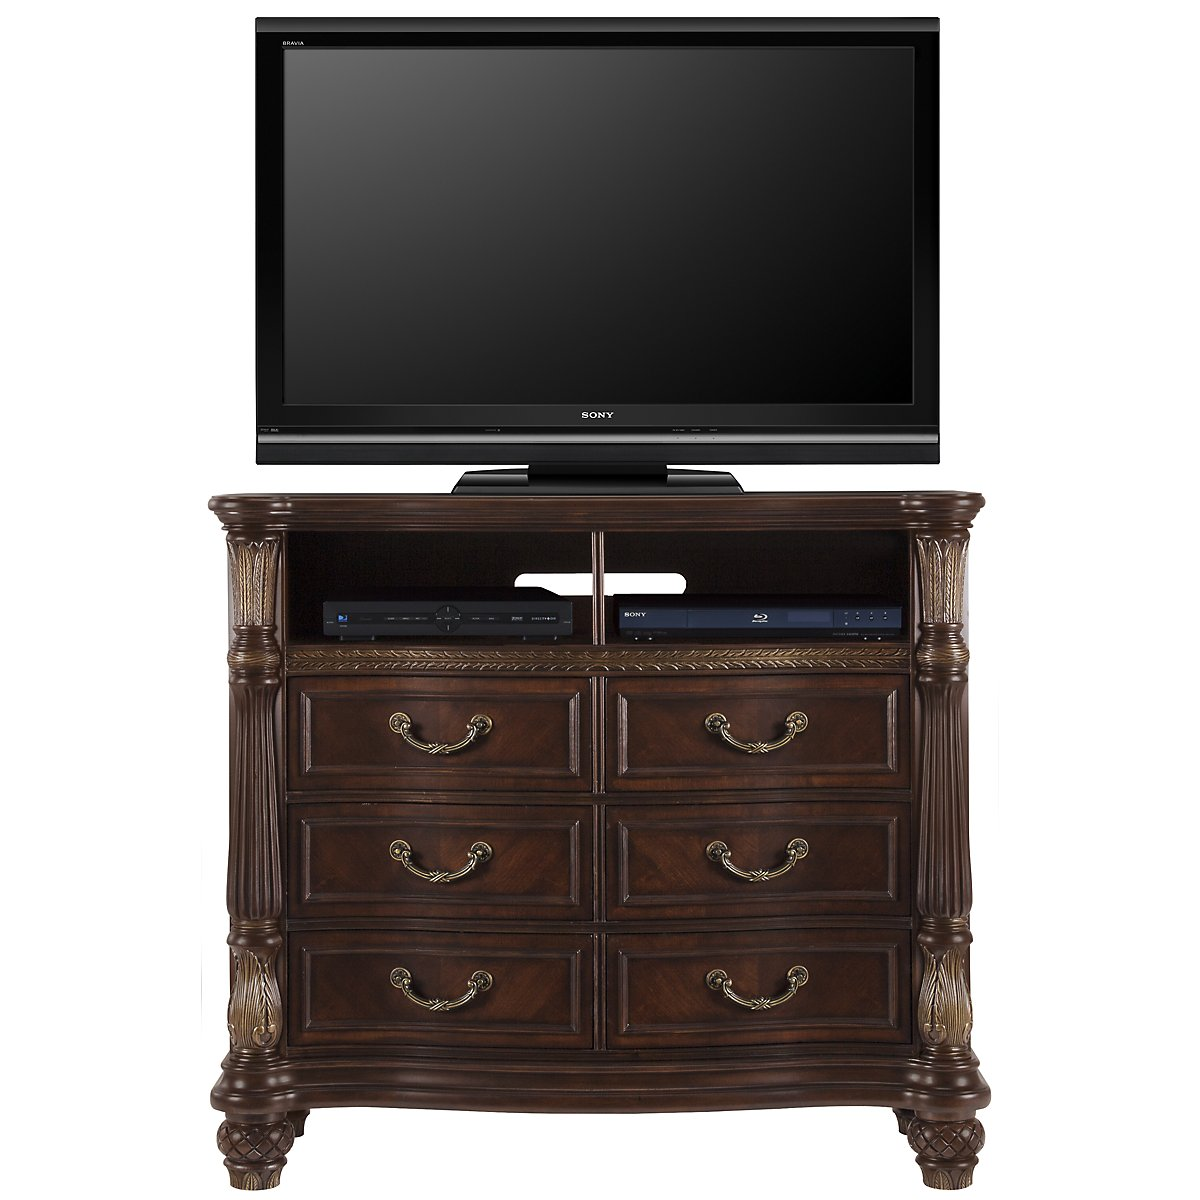 Tradewinds Dark Tone Media Chest